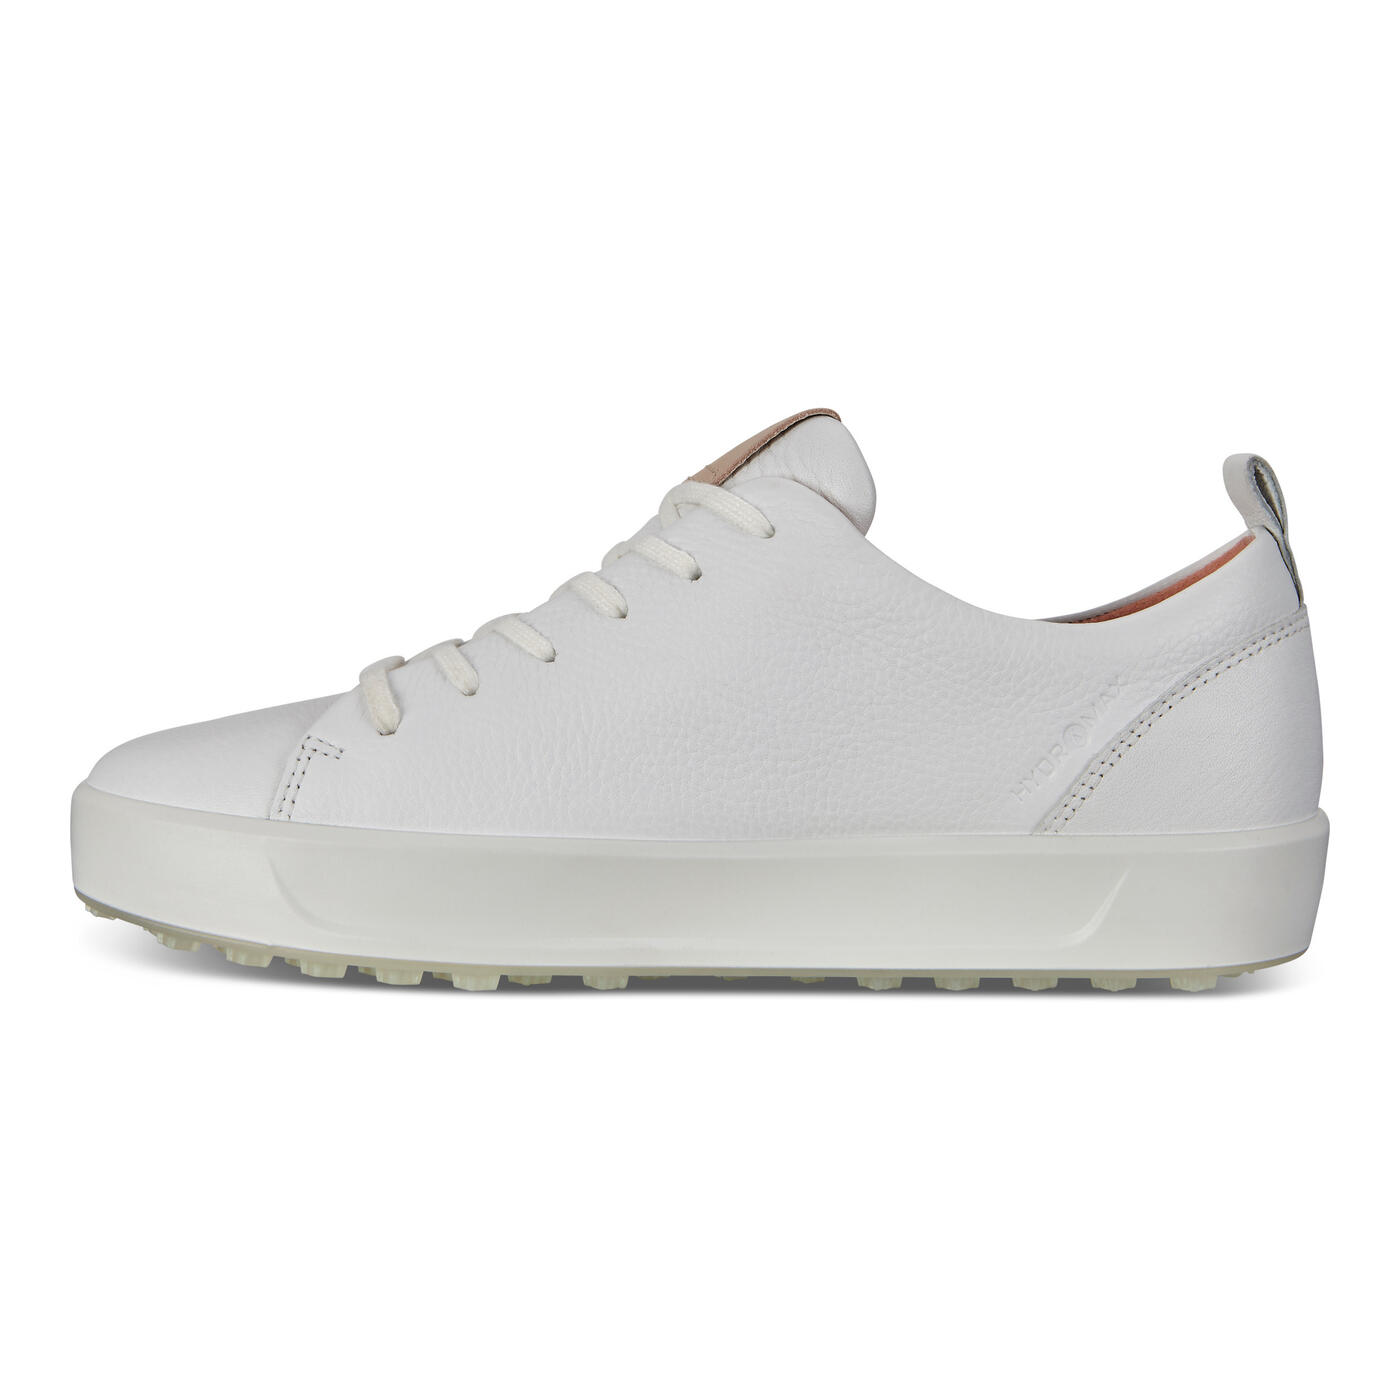 ECCO GOLF SOFT Women's Shoe